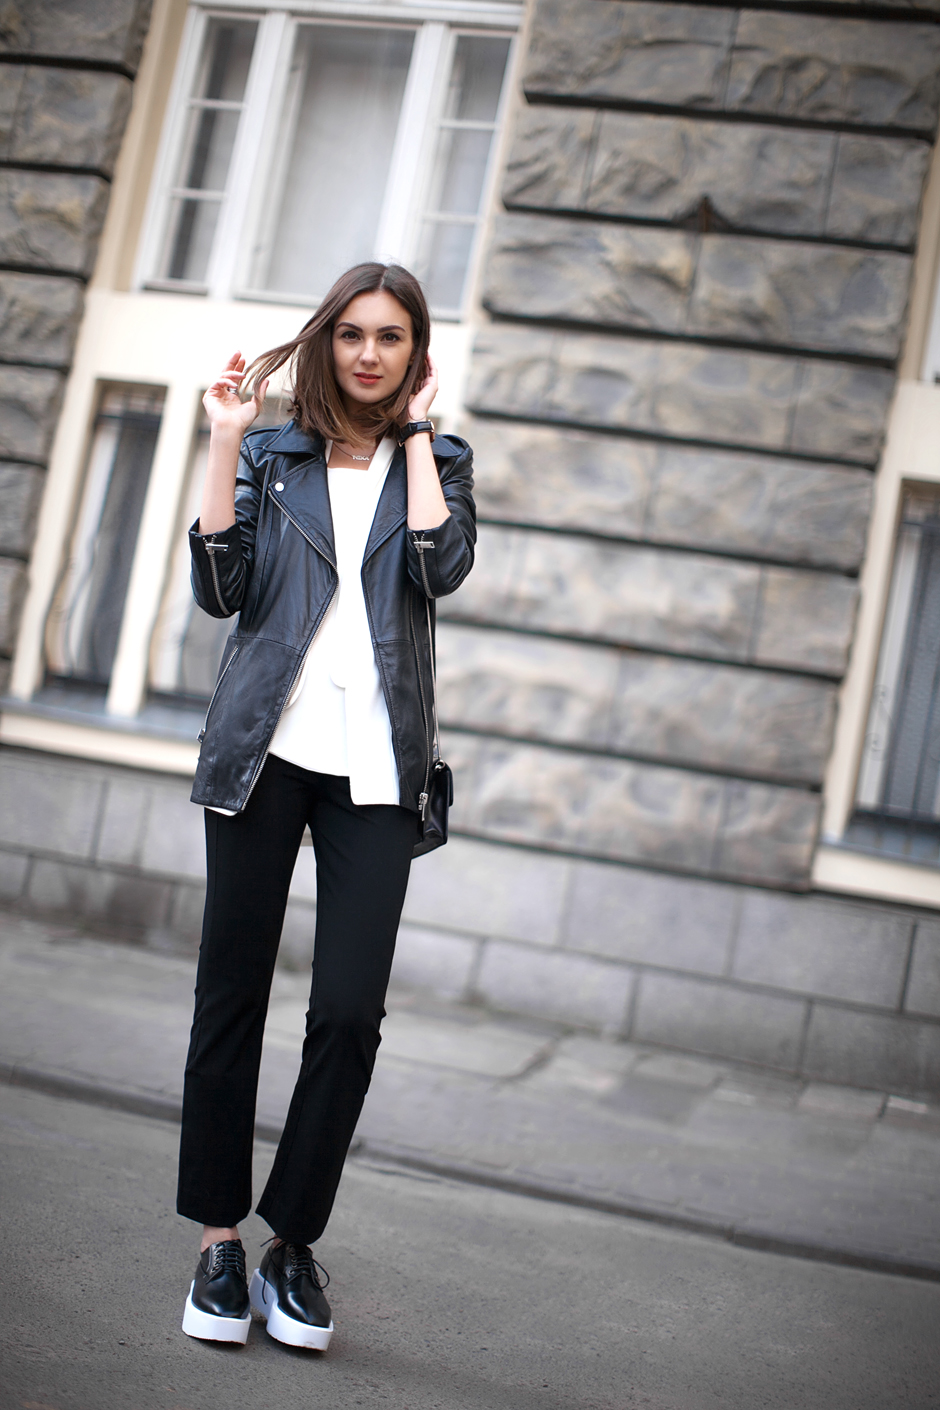 black-oversized-letaher-jacket-outfit-streetstyle